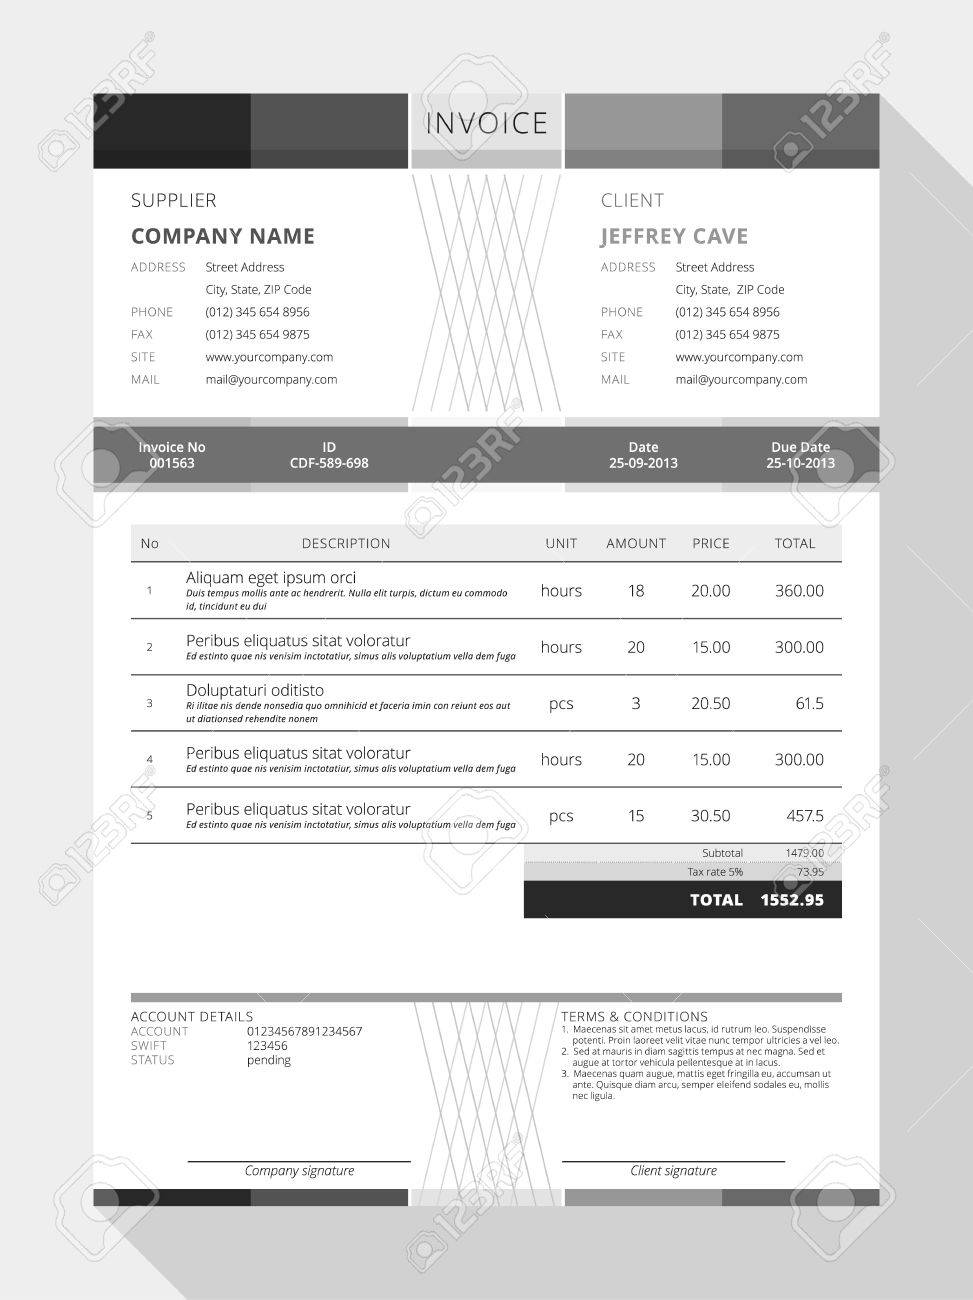 Carsforlessus  Remarkable Design An Invoice  Professional Graphic Design Invoice  With Goodlooking Vector Customizable Invoice Form Template Design Vector   Design An Invoice With Charming Kroger Return Policy Without Receipt Also Usps Tracking Number On Receipt In Addition Fake Receipts And Read Receipts For Android As Well As Read Receipts Gmail Additionally Receipts Scanner From Happytomco With Carsforlessus  Goodlooking Design An Invoice  Professional Graphic Design Invoice  With Charming Vector Customizable Invoice Form Template Design Vector   Design An Invoice And Remarkable Kroger Return Policy Without Receipt Also Usps Tracking Number On Receipt In Addition Fake Receipts From Happytomco